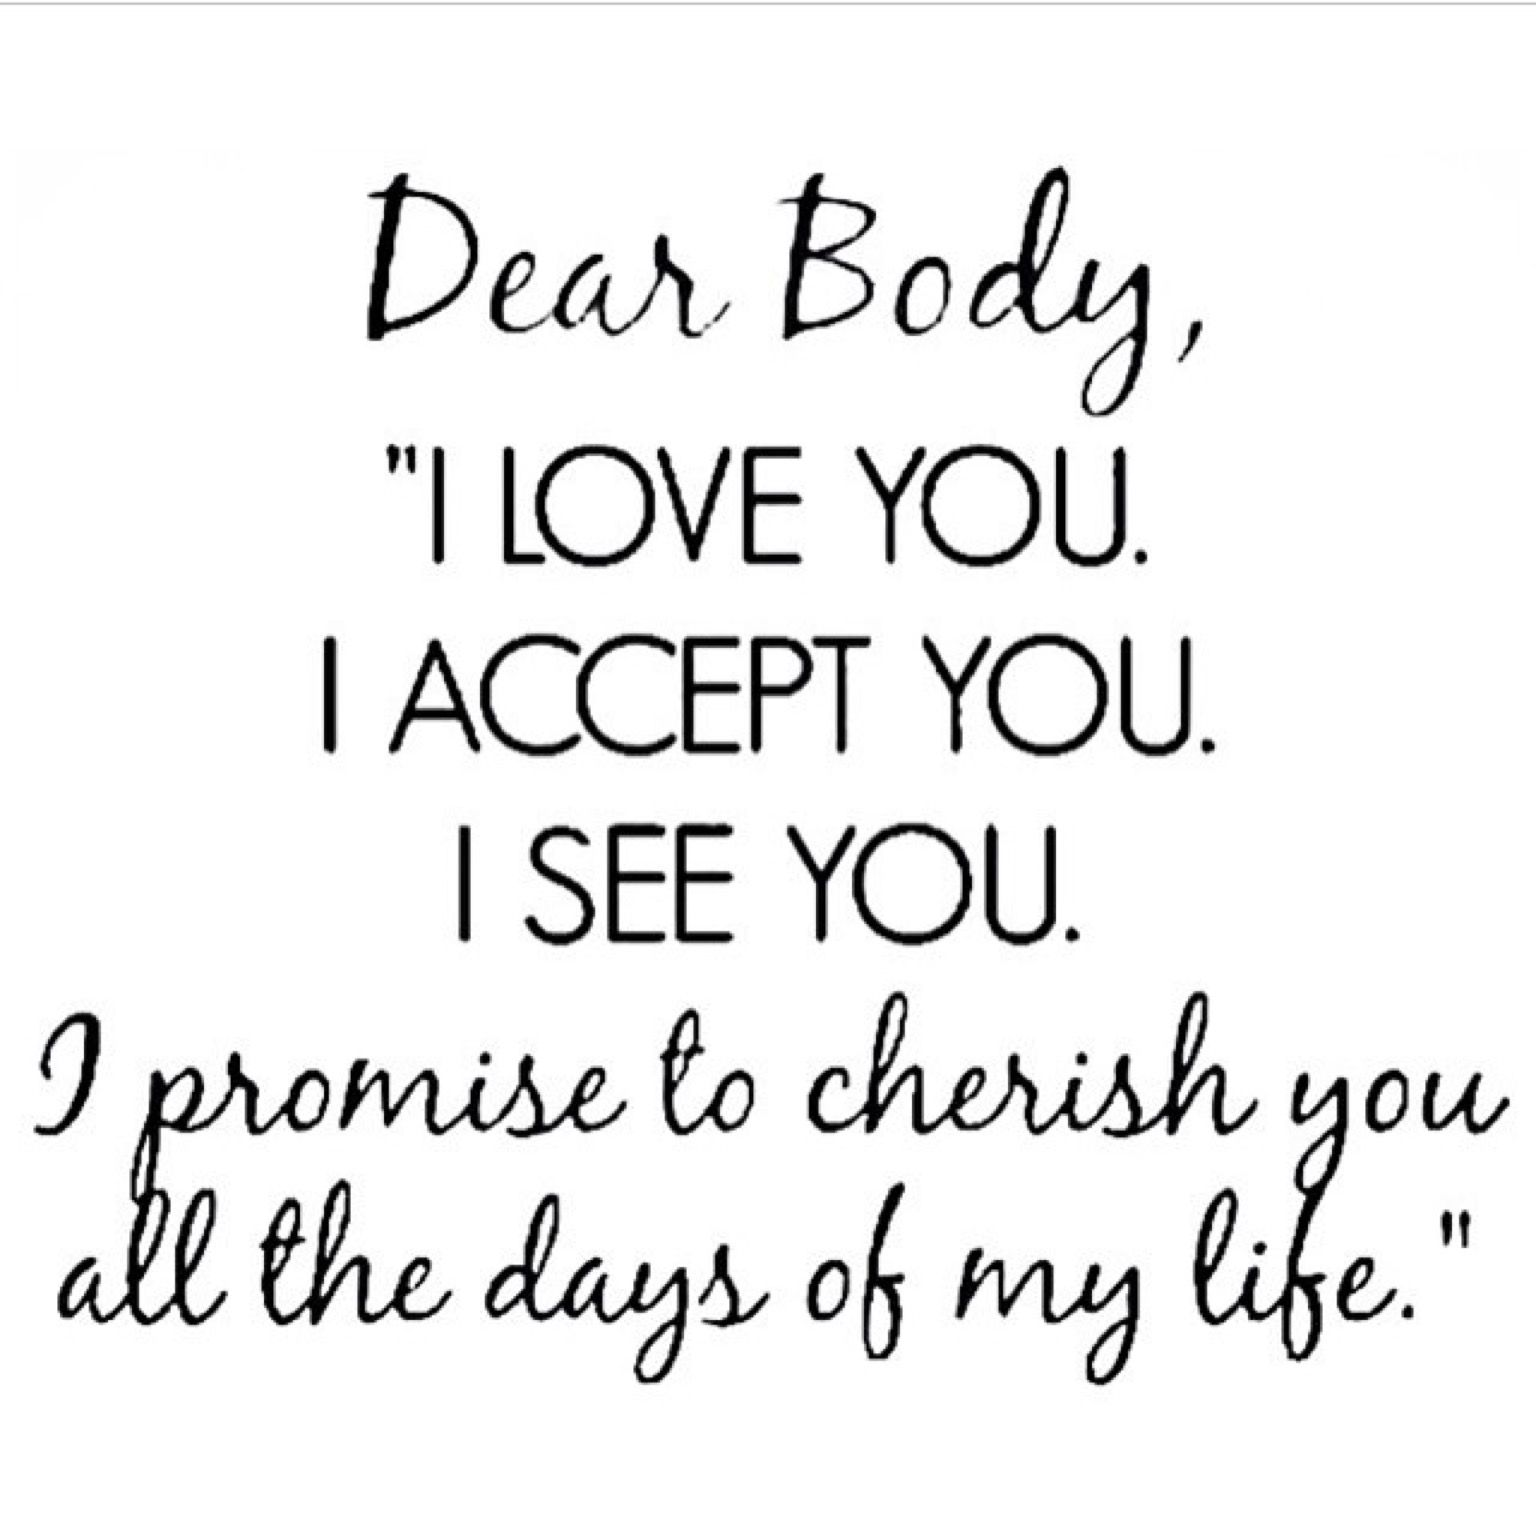 Love your body at any size and treat it with love and care